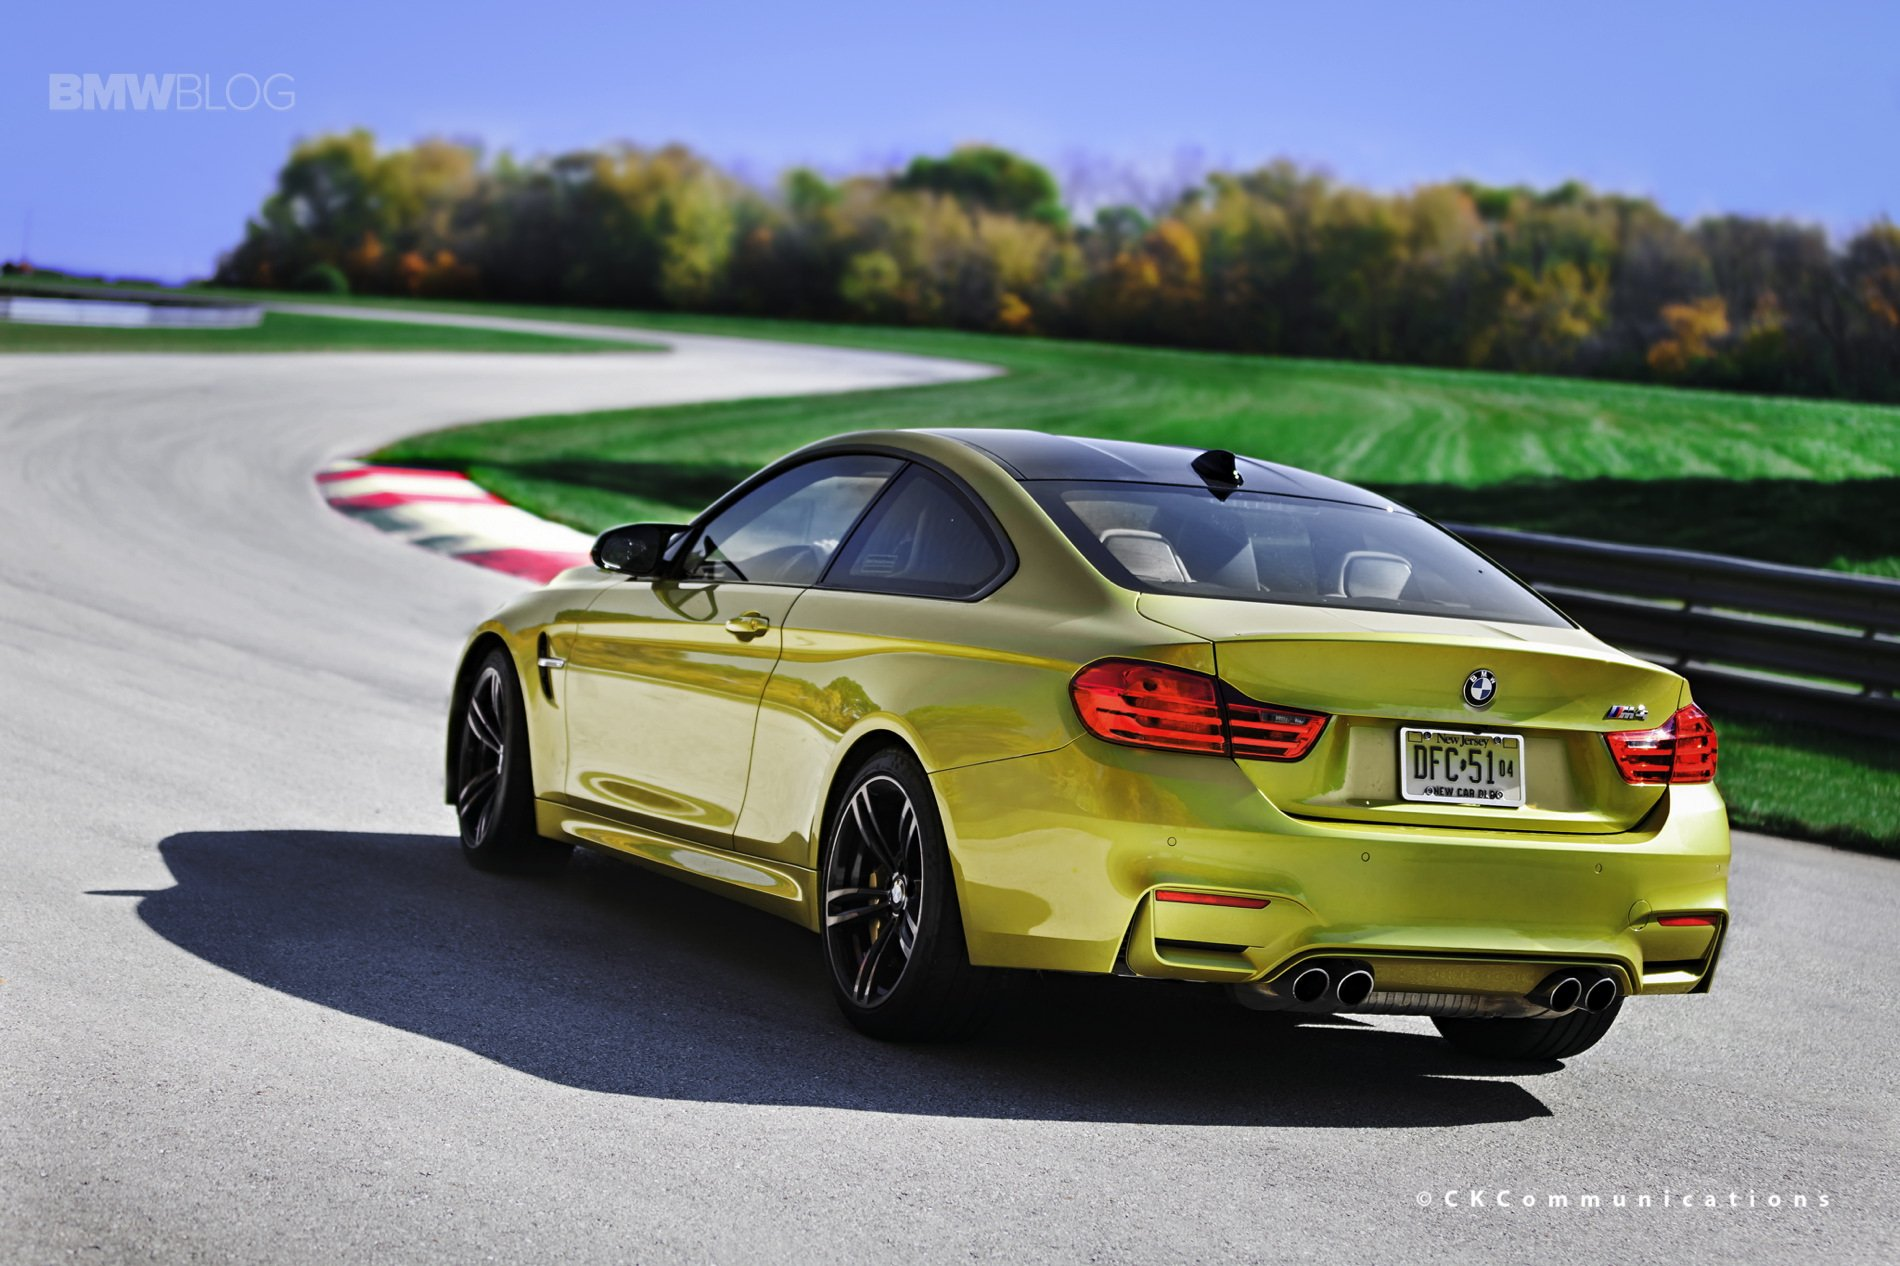 2_2015-bmw-m4-coupe-austin-yellow-images-20-